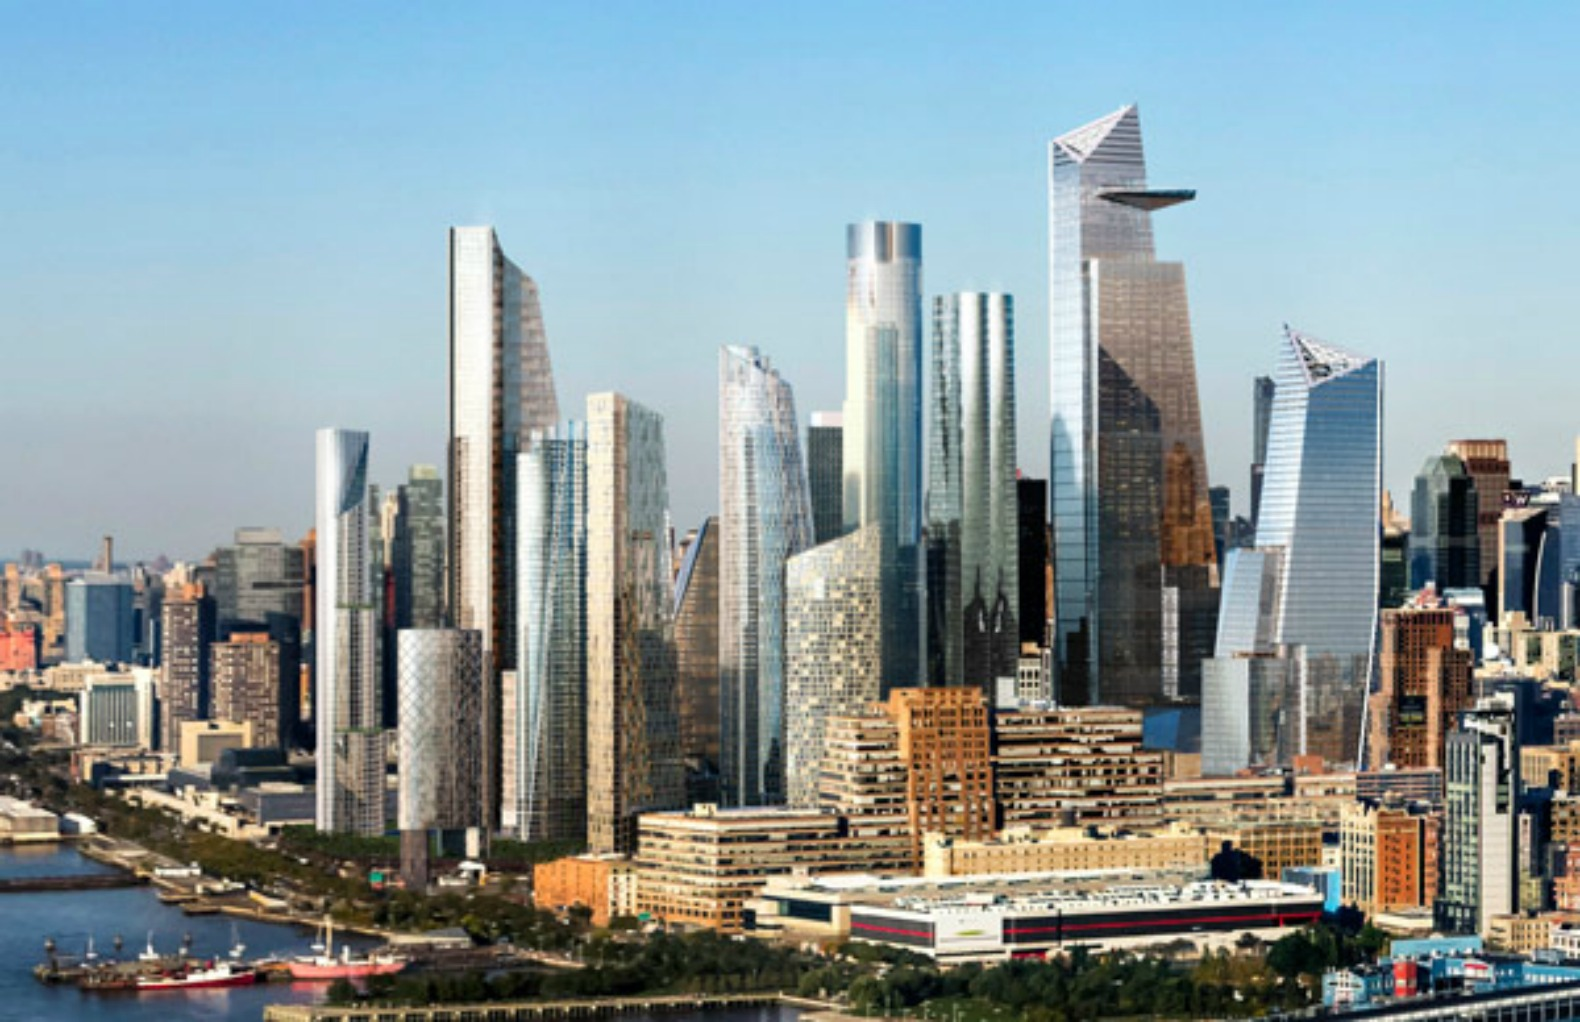 LEED Gold-seeking 10 Hudson Yards marks mega-development's first completed building